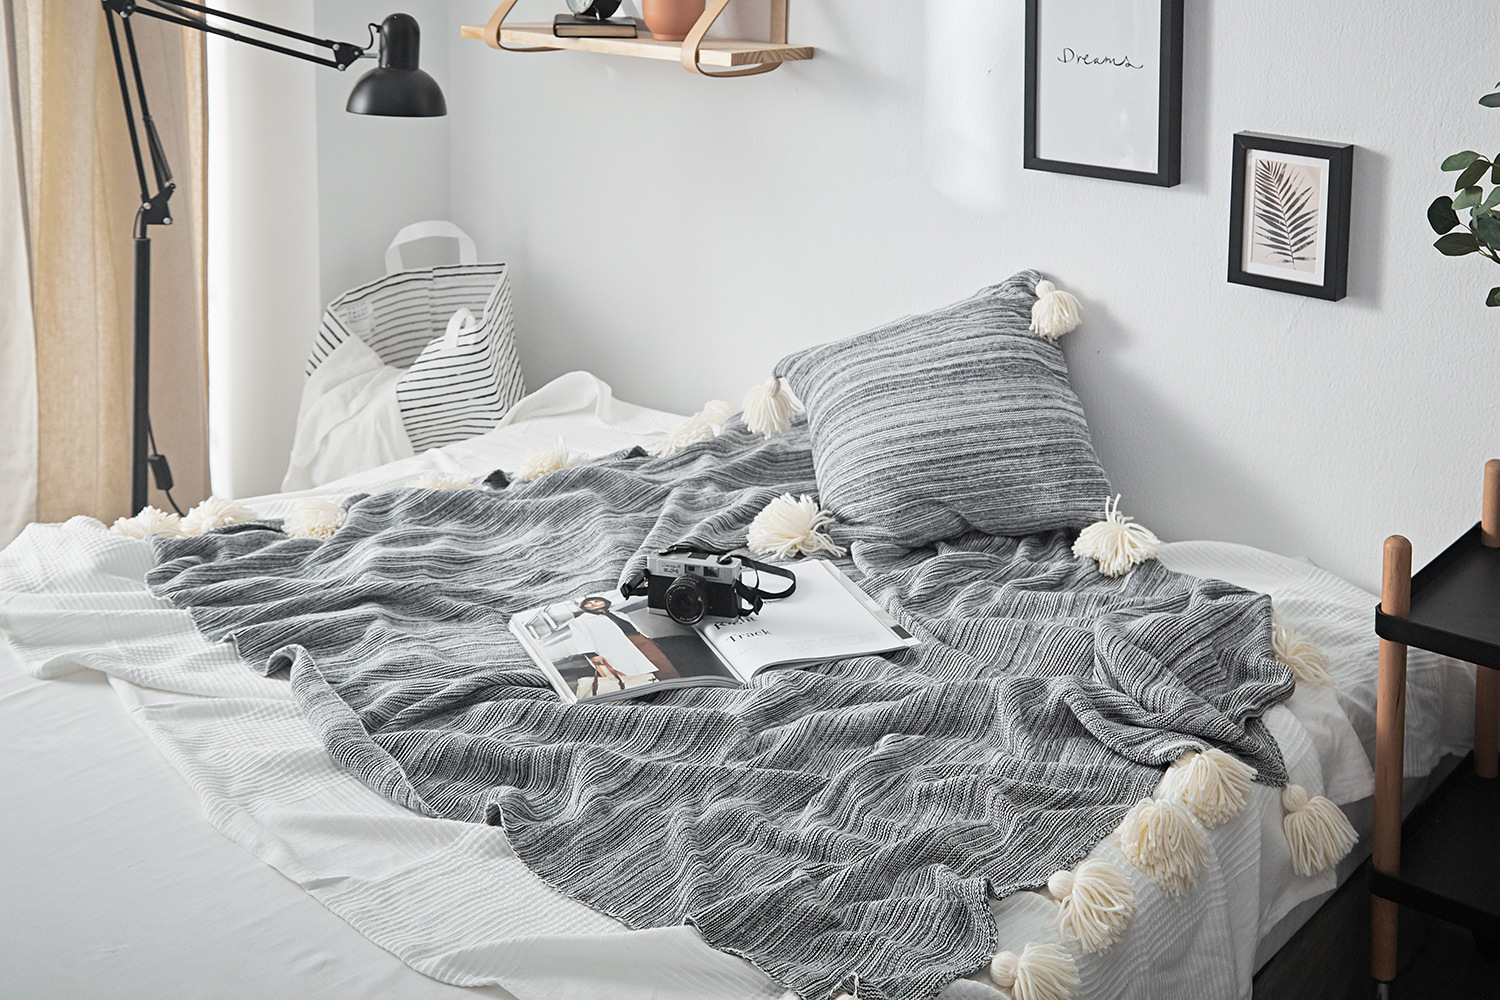 Awesome Cobertor Knitted Blanket On The Couch Cotton Throws Sofa Plane Travel Plaids Fashion Orange Blue Grey For Bedroom White Fuzzy Blanket Black And White Uwap Interior Chair Design Uwaporg